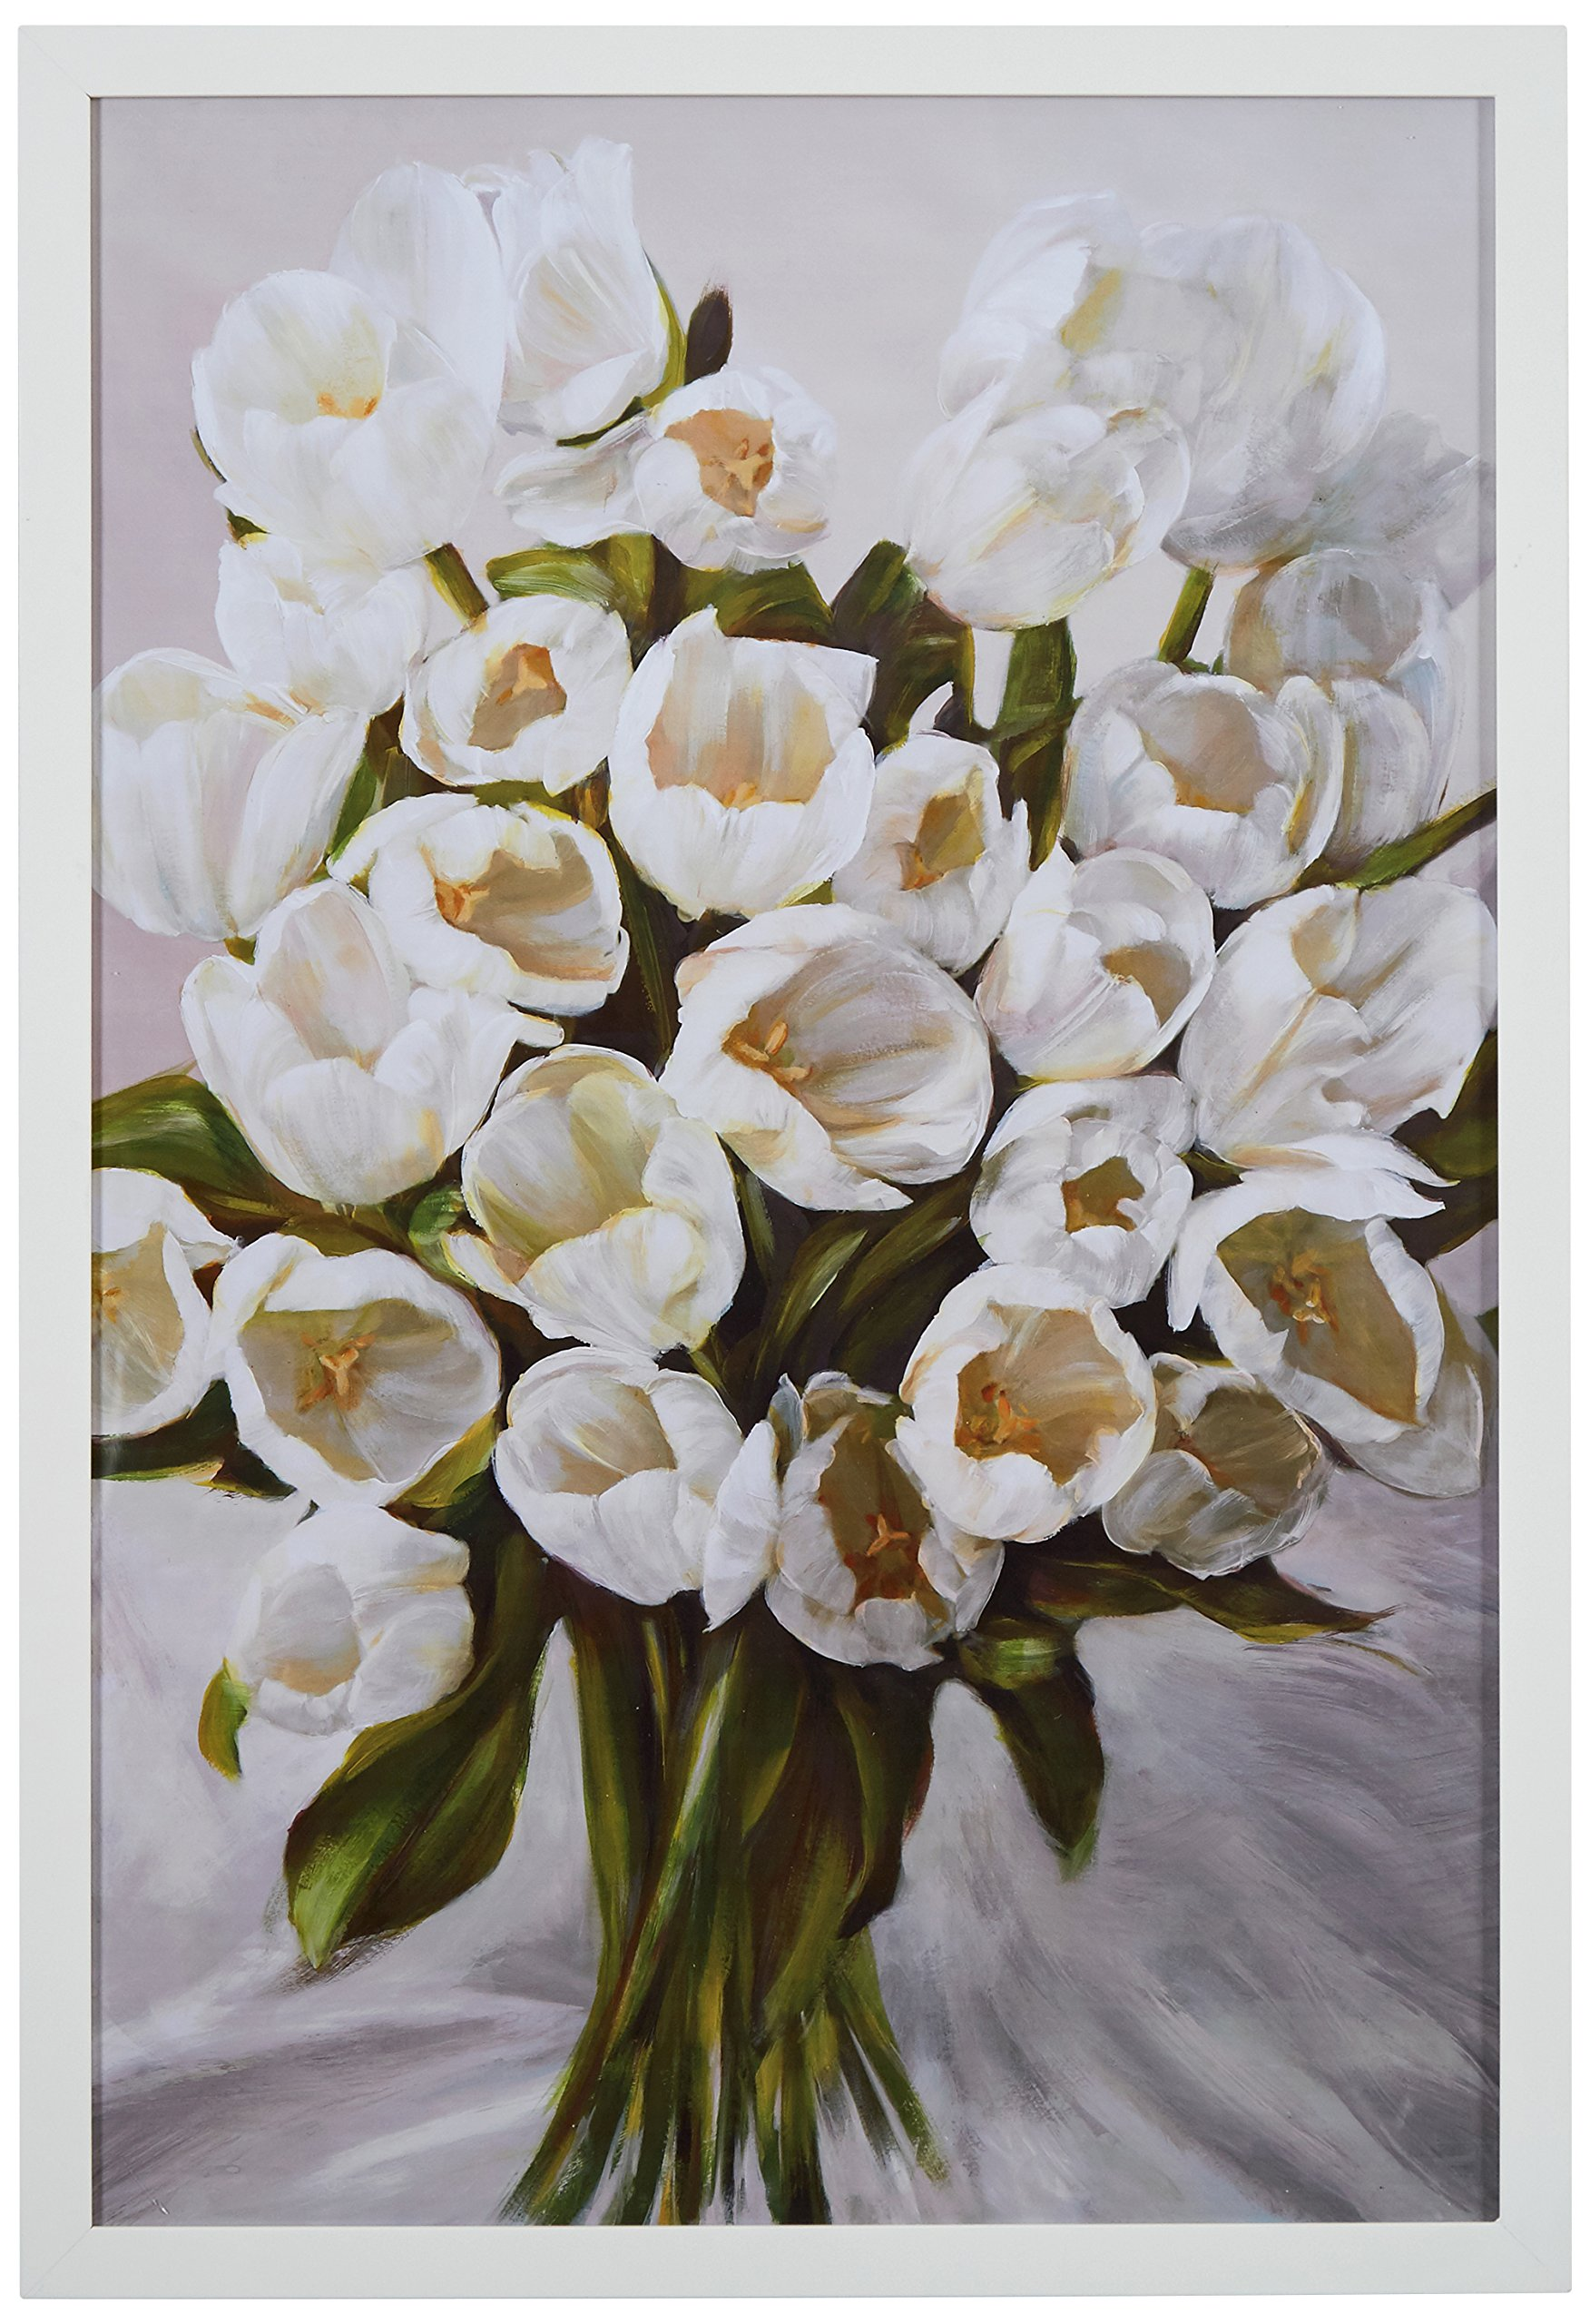 Contemporary White Tulip Bouquet Print in White Wood Frame, 18'' x 26'' by Stone & Beam